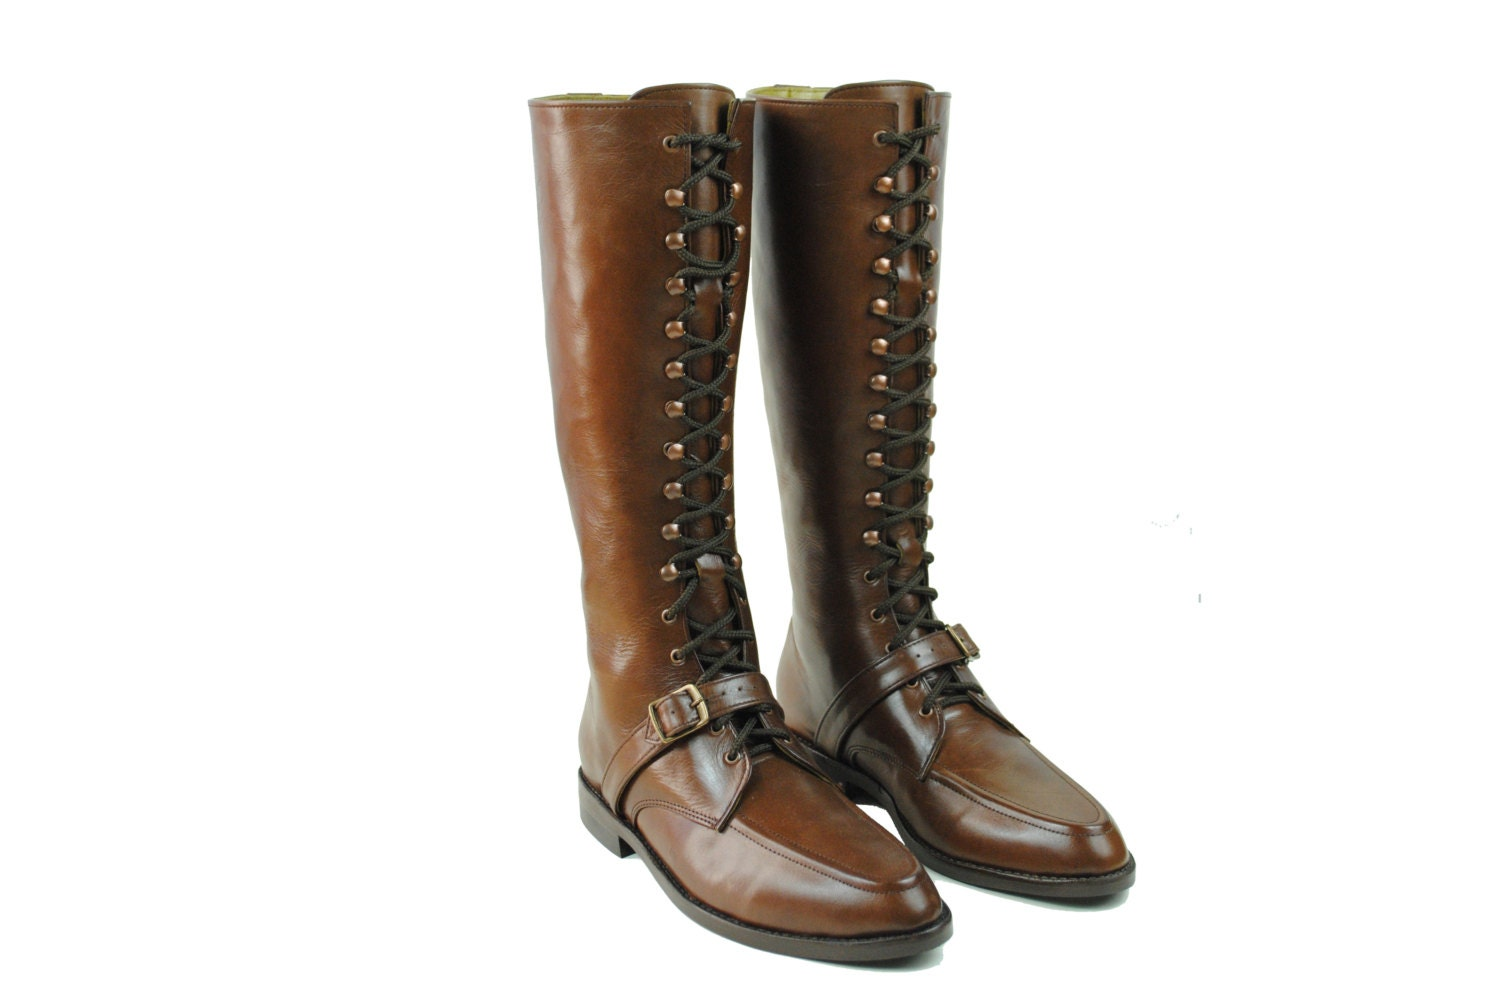 kahlo lineman boots goodyear welt brown leather combat by